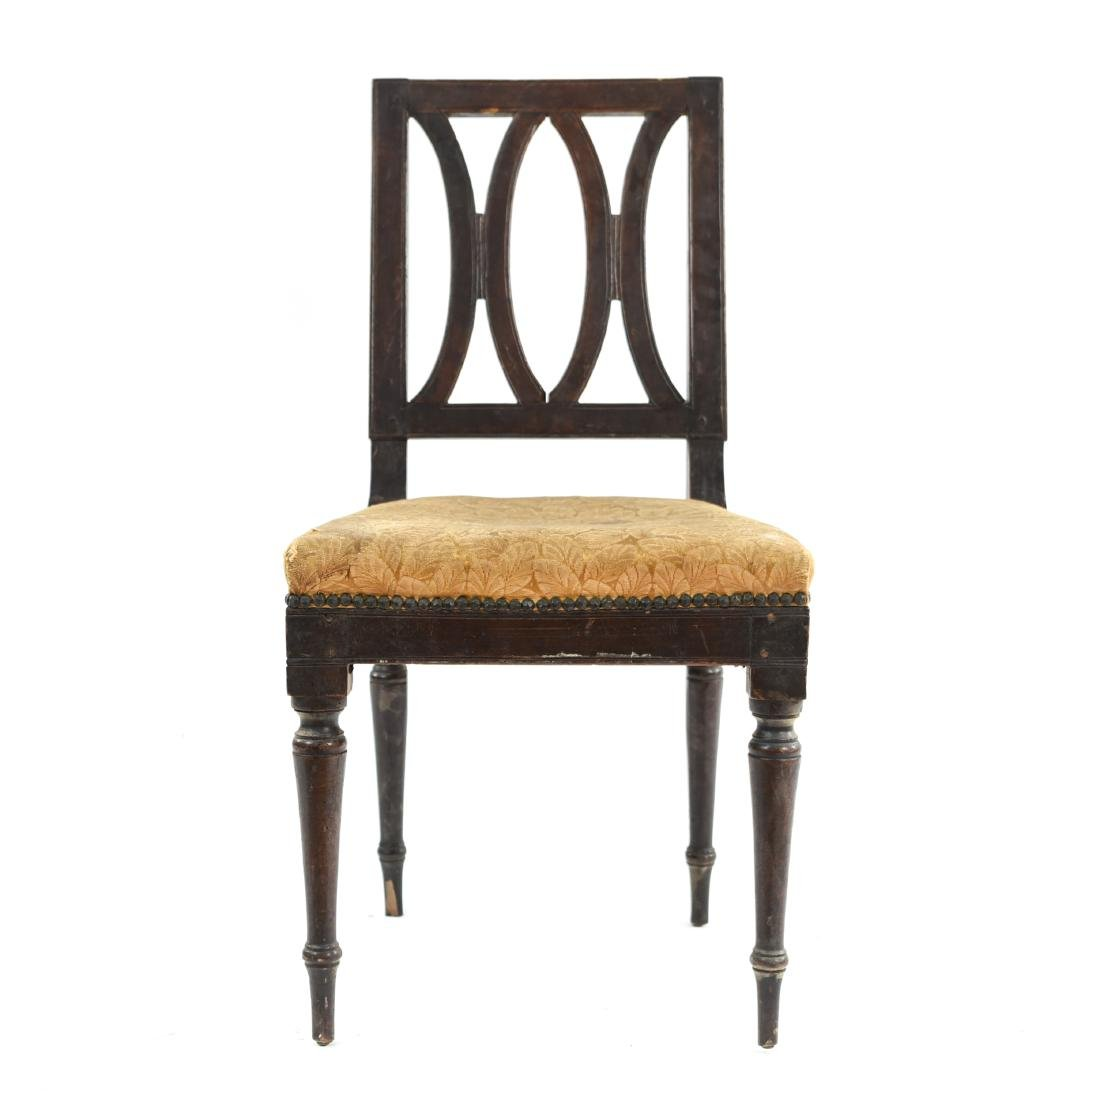 SIDE CHAIR - 2